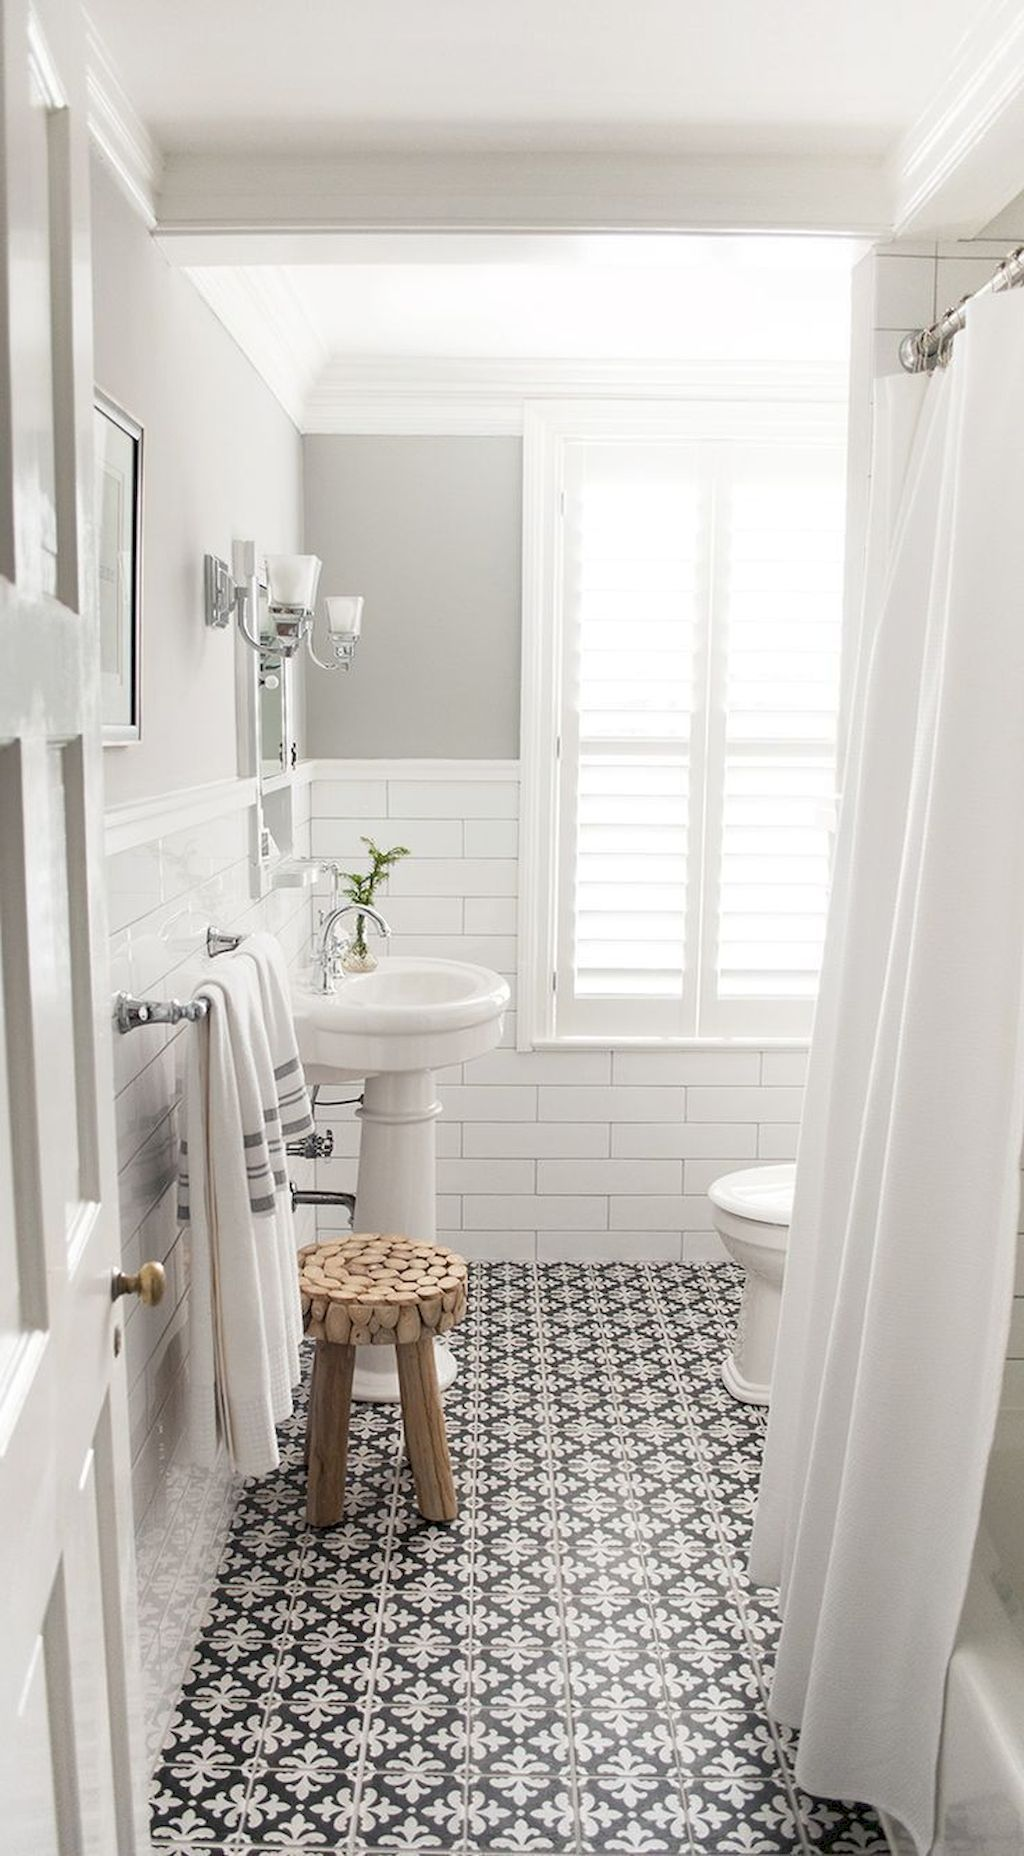 Gorgeous 111 Awesome Small Bathroom Remodel Ideas On A Budget https ...